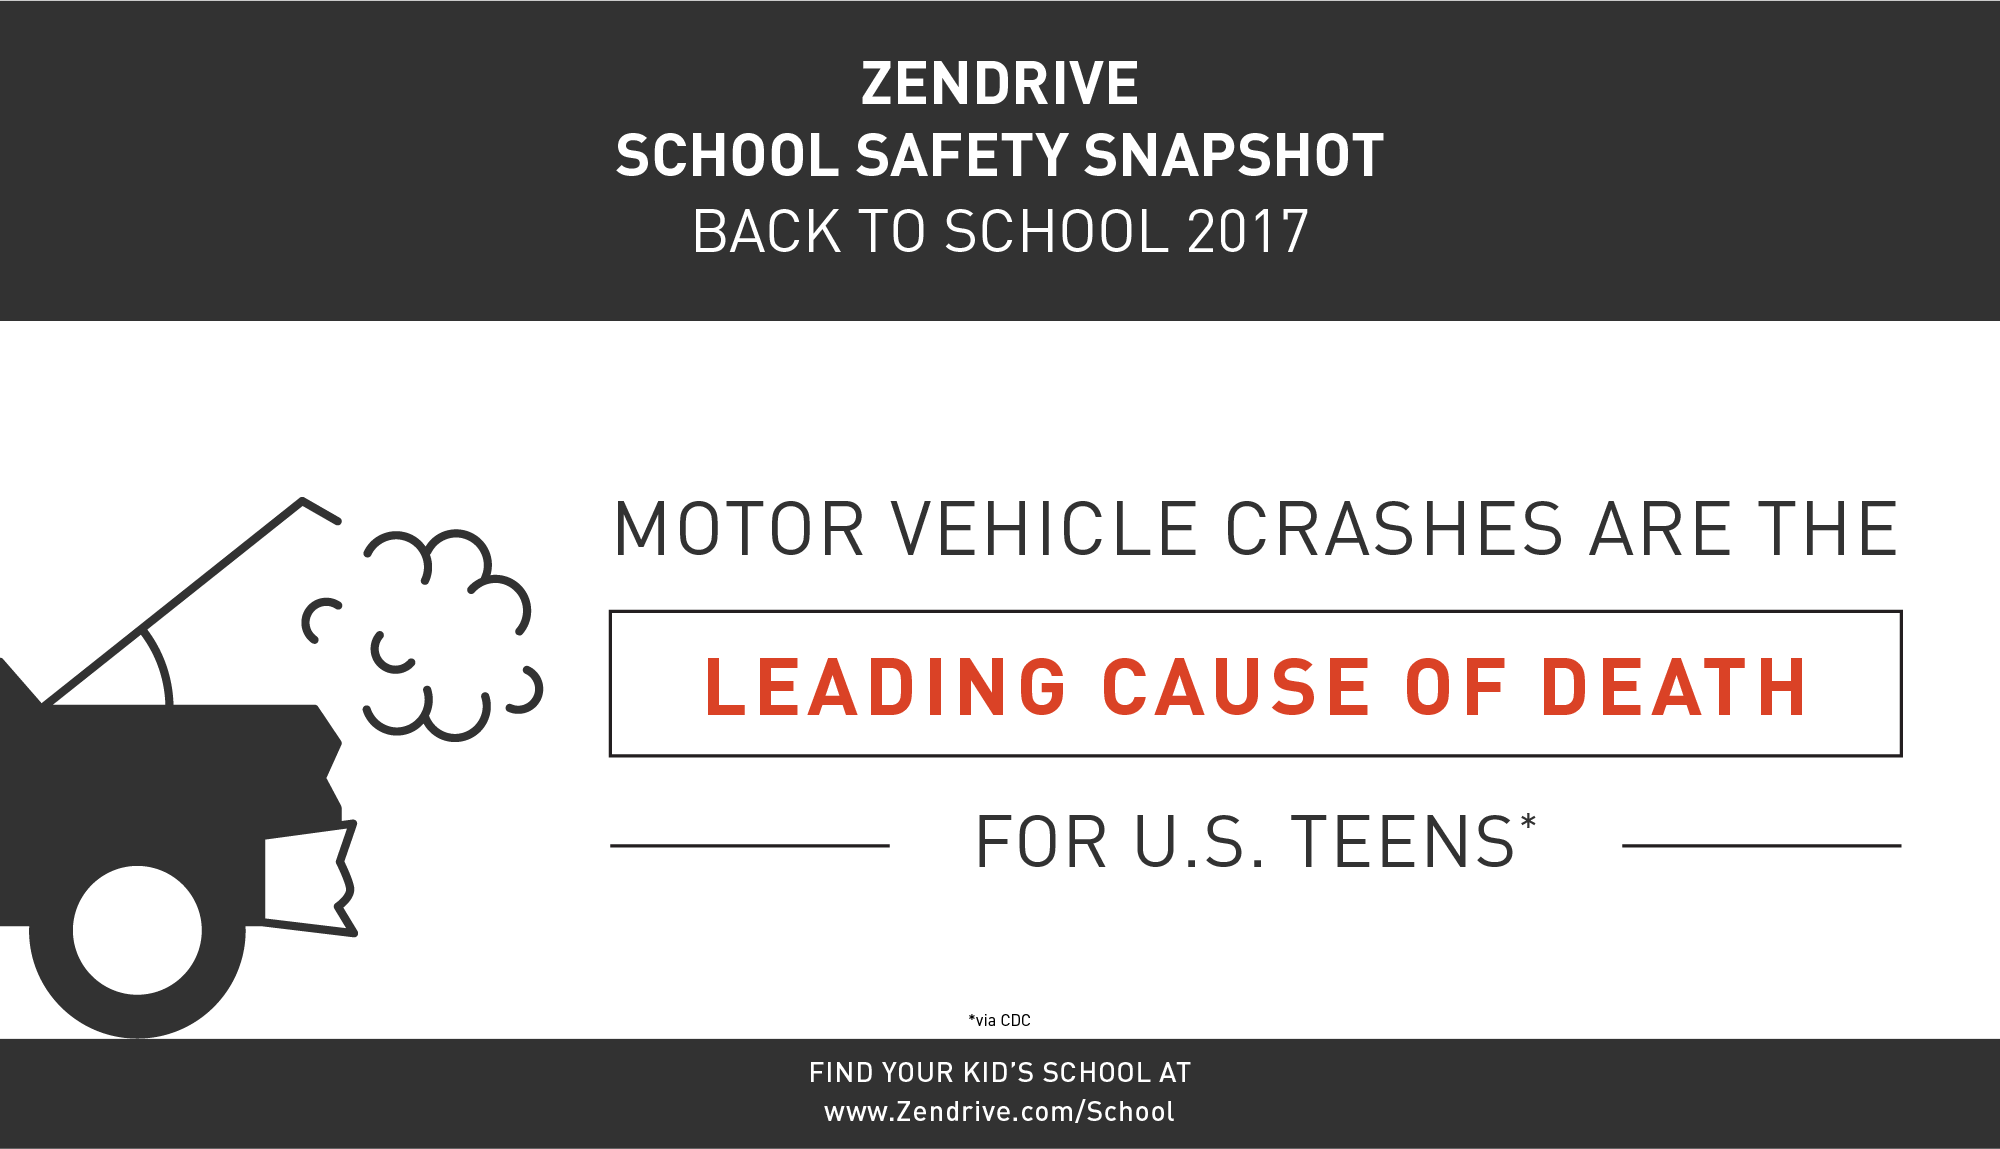 Zendrive.com analyzes the safety of school zones by measuring the number of distracted drivers. It mapped out areas around 75,000 schools nationwide and analyzed over 3.4 billion driver miles. The data collected gives a safety snapshot of April 2017. (Courtesy Zendrive)